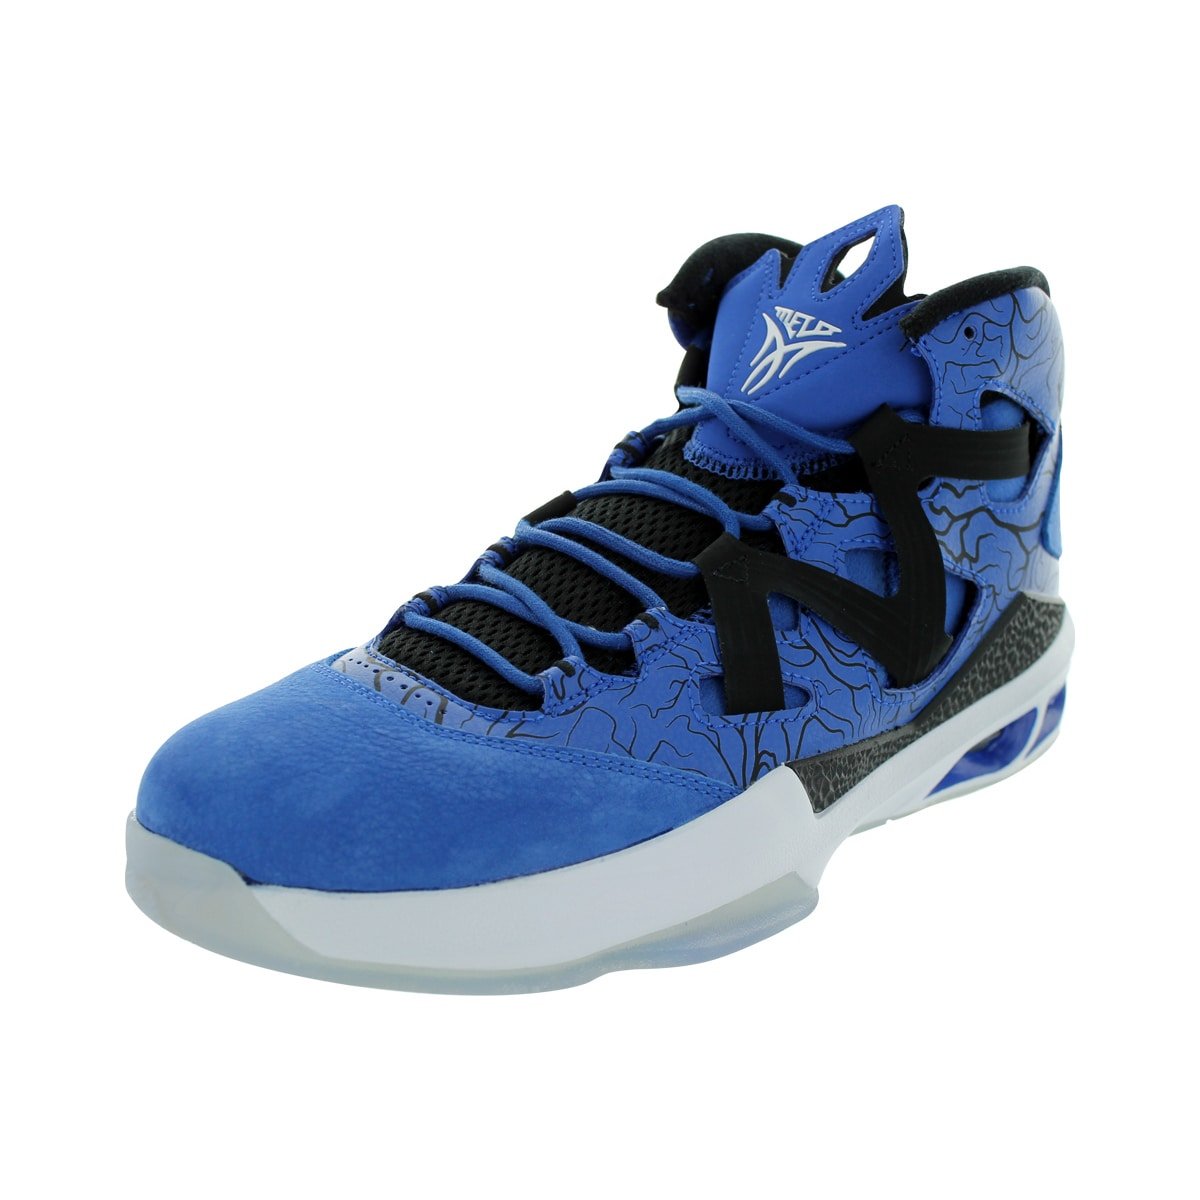 low priced e61f9 c3ef3 Shop Nike Men s Jordan Melo M9 Game Royal White Black Basketball Shoe -  Free Shipping Today - Overstock - 12318762